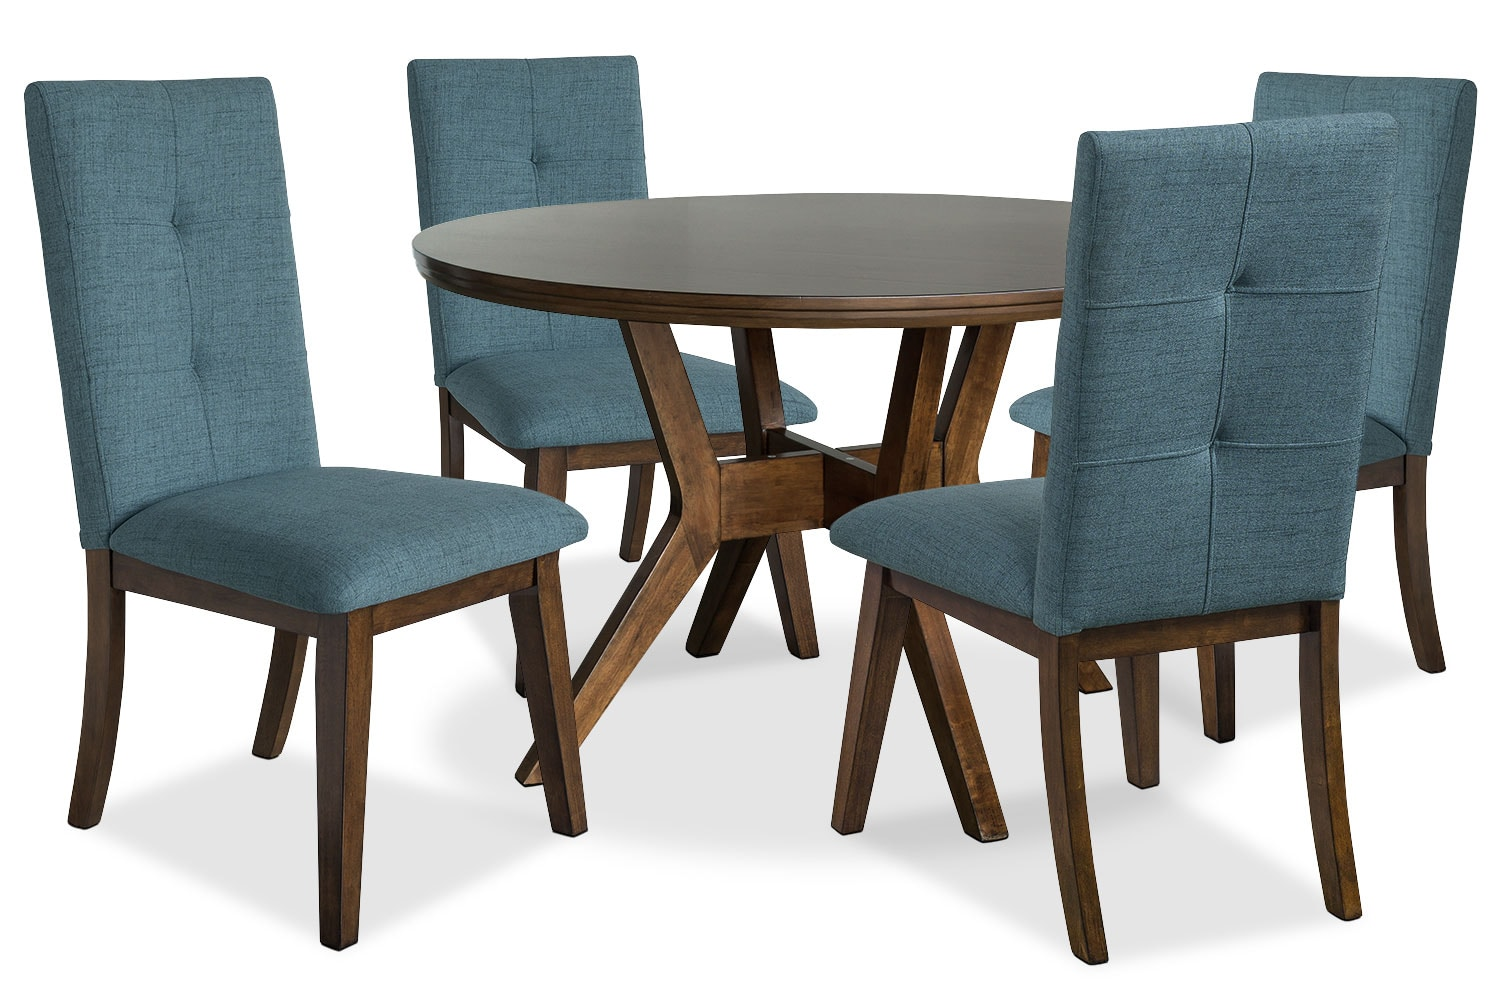 Chelsea 5 Piece Round Dining Table Package With Aqua